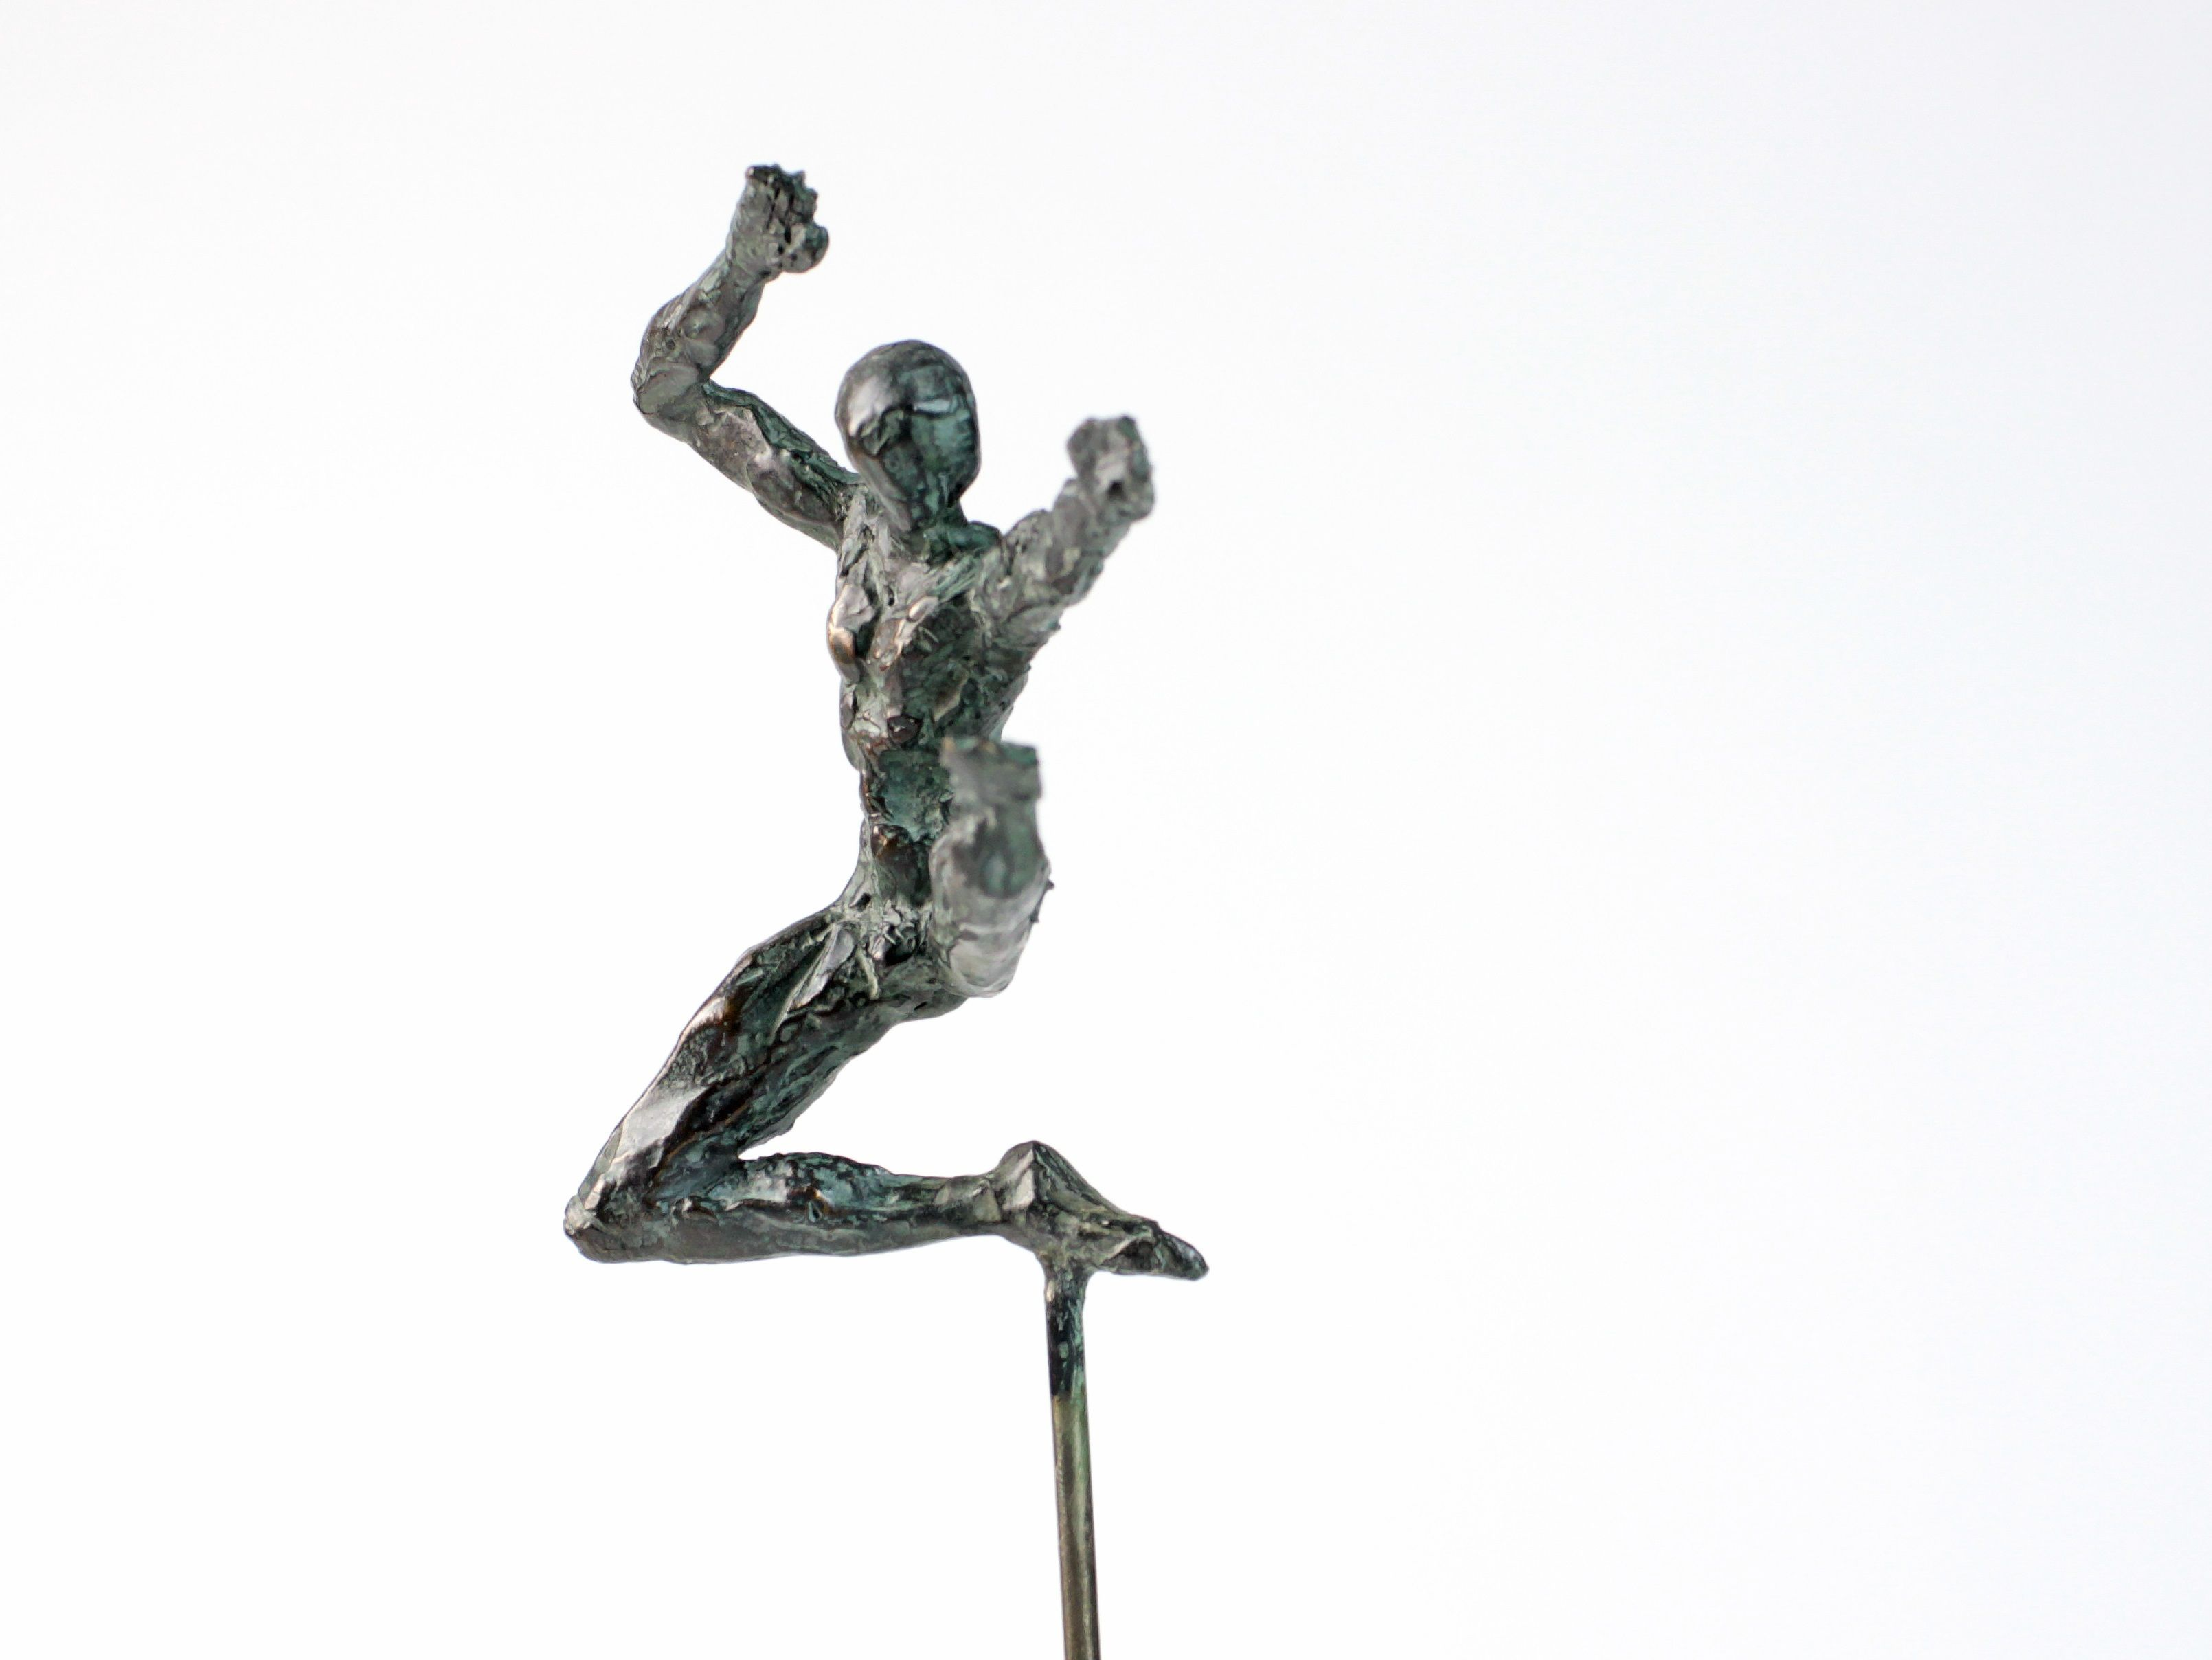 Petit Danseur Karateka II,Yann Guillon,Sculpture contemporaine, detail 1